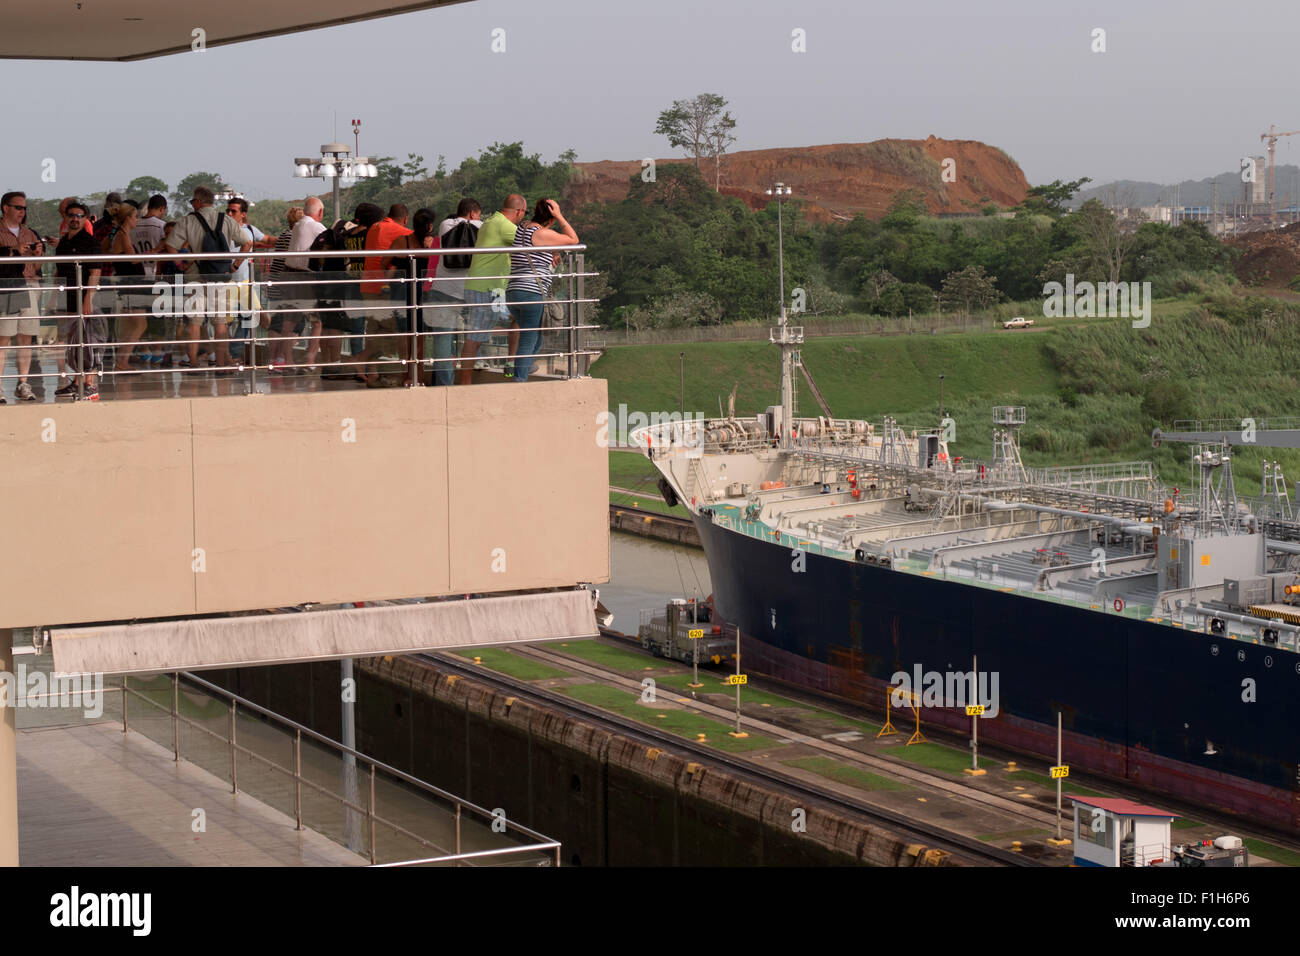 Panama Canal at Miraflores Locks. Ocean shipping, worldwide commerce, logistics, sea industry, ship, boat, people, - Stock Image